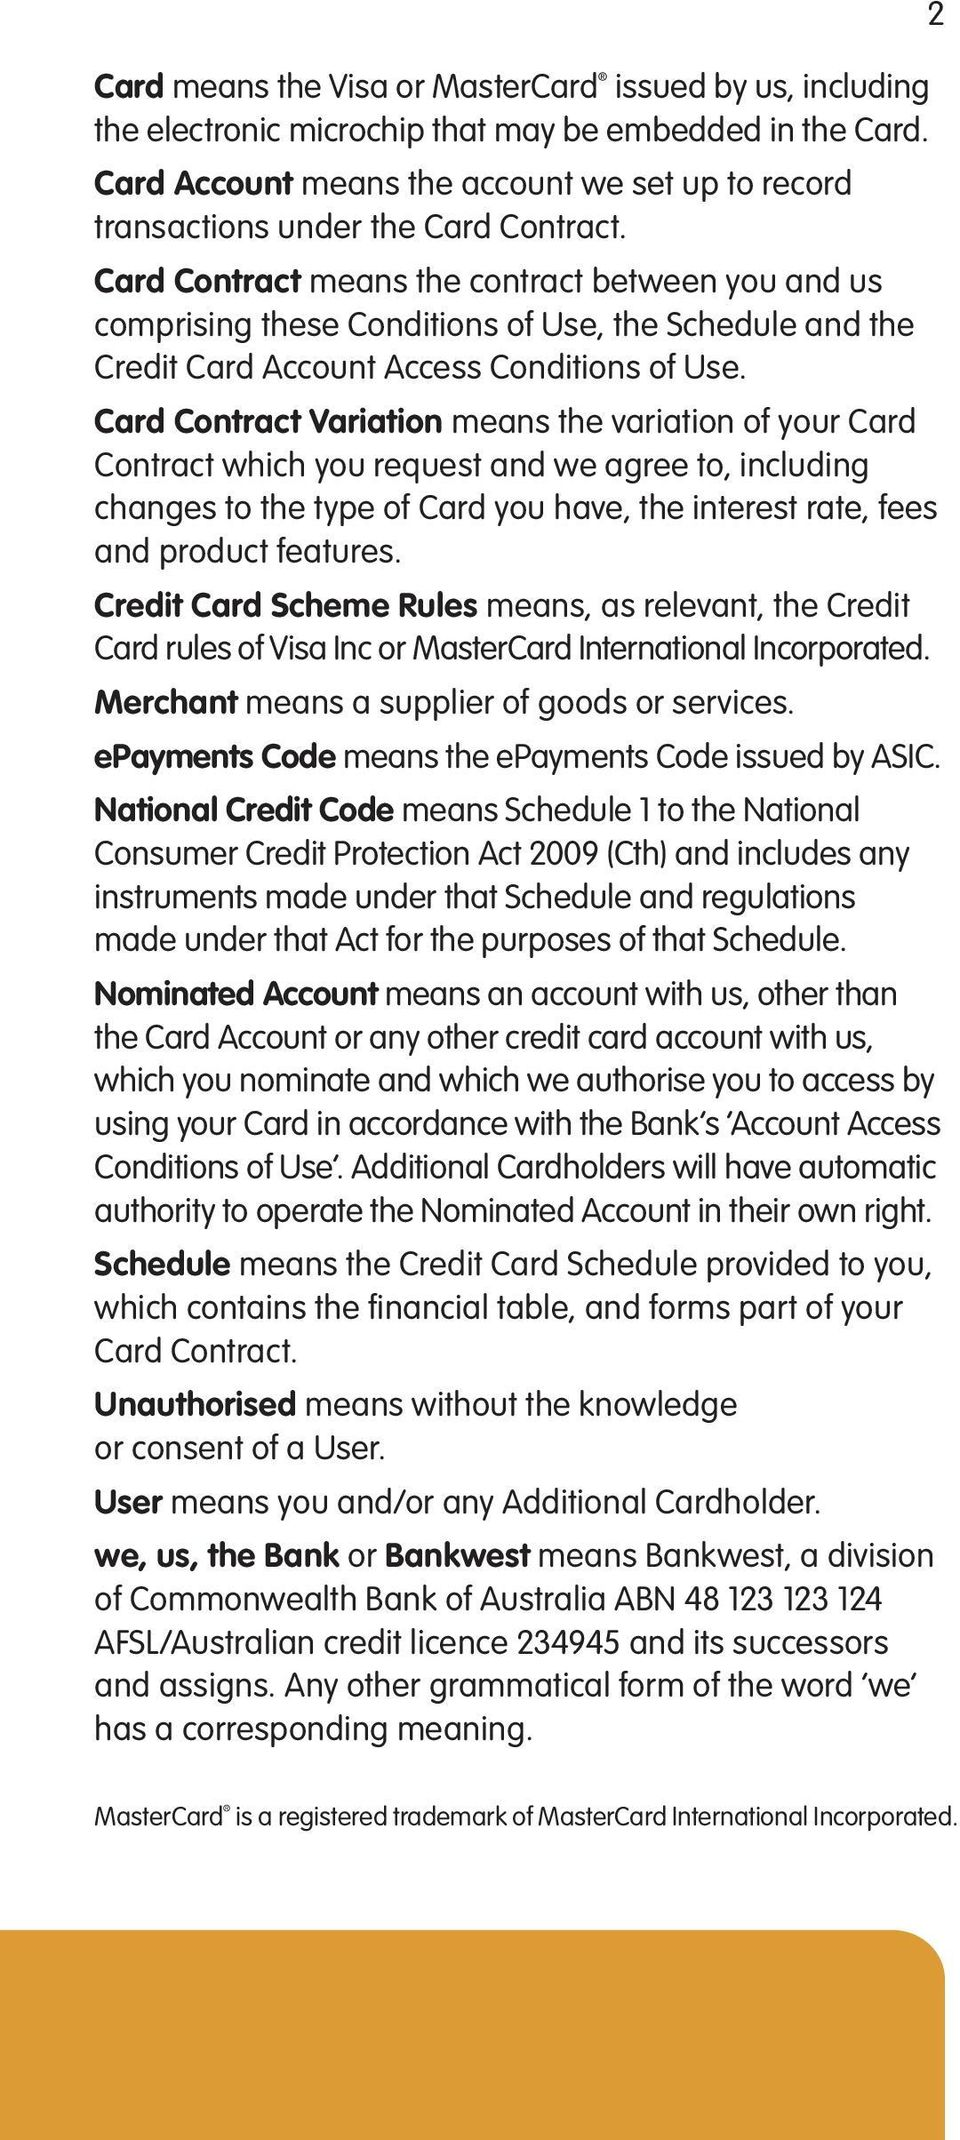 Card Contract means the contract between you and us comprising these Conditions of Use, the Schedule and the Credit Card Account Access Conditions of Use.